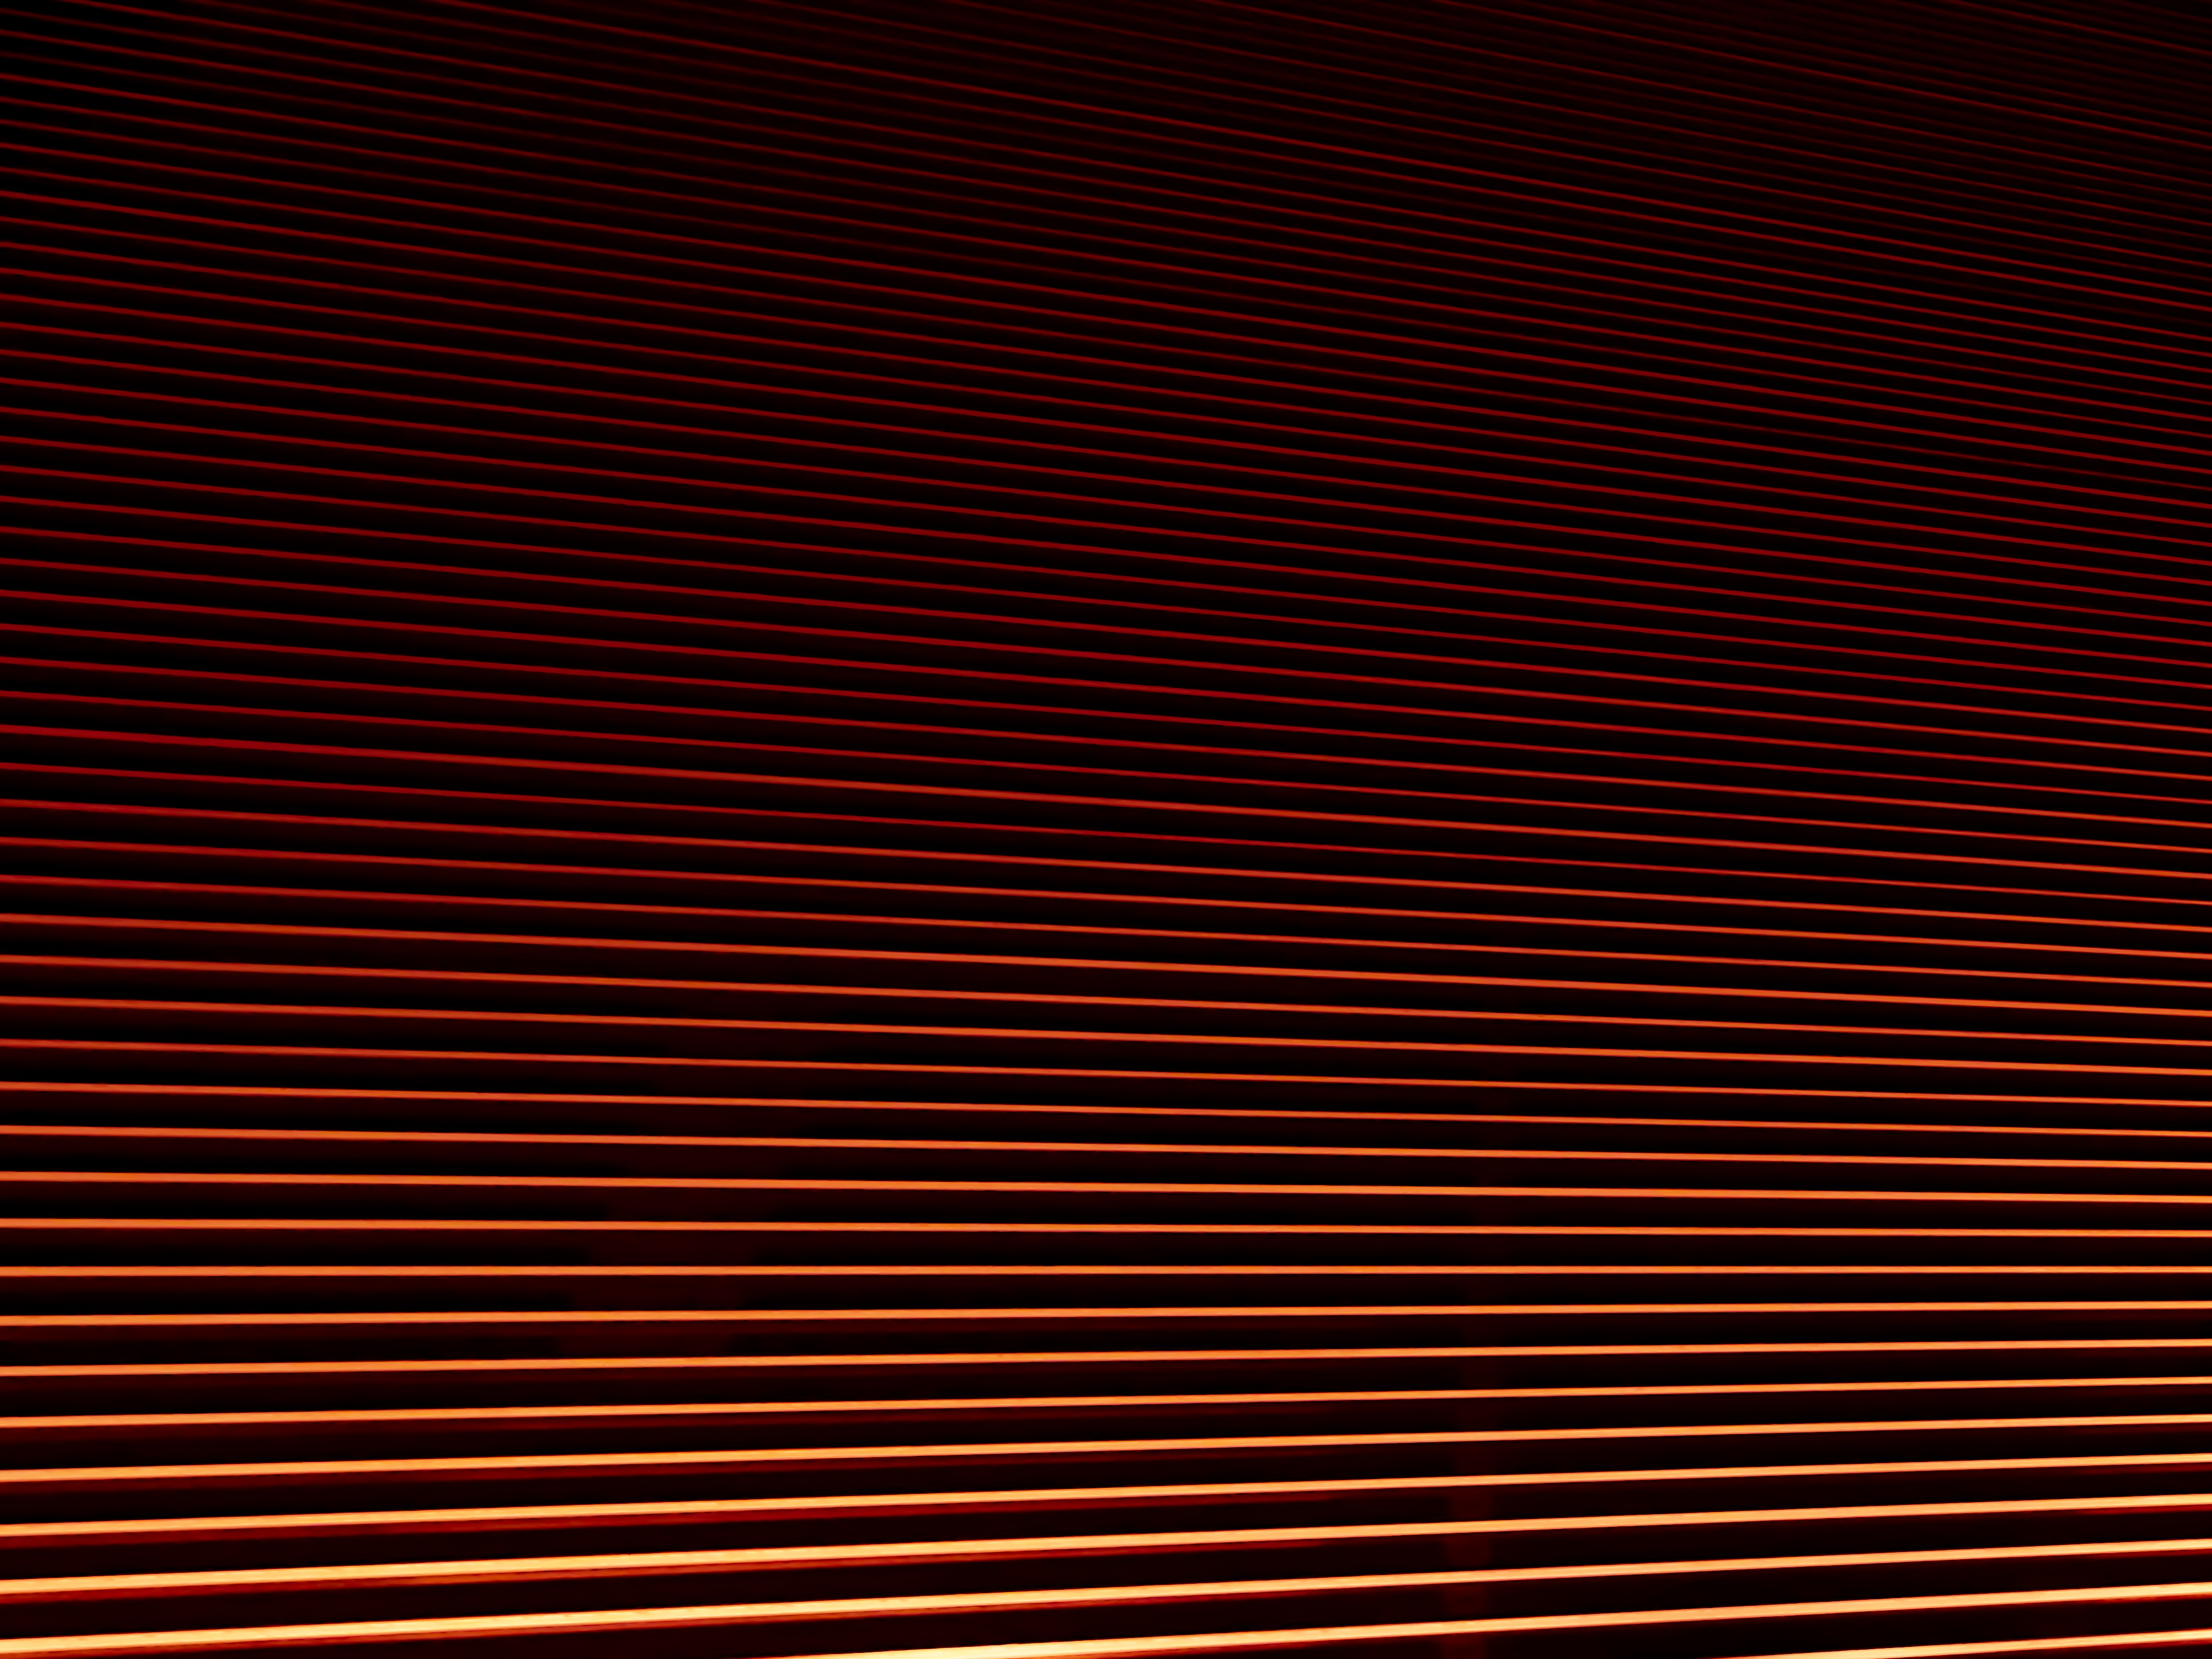 153758 free download Orange wallpapers for phone, Minimalism, Stairs, Ladder, Steps, Backlight, Illumination, Contrast, Wide, Kishinev, Moldova, Architecture Orange images and screensavers for mobile